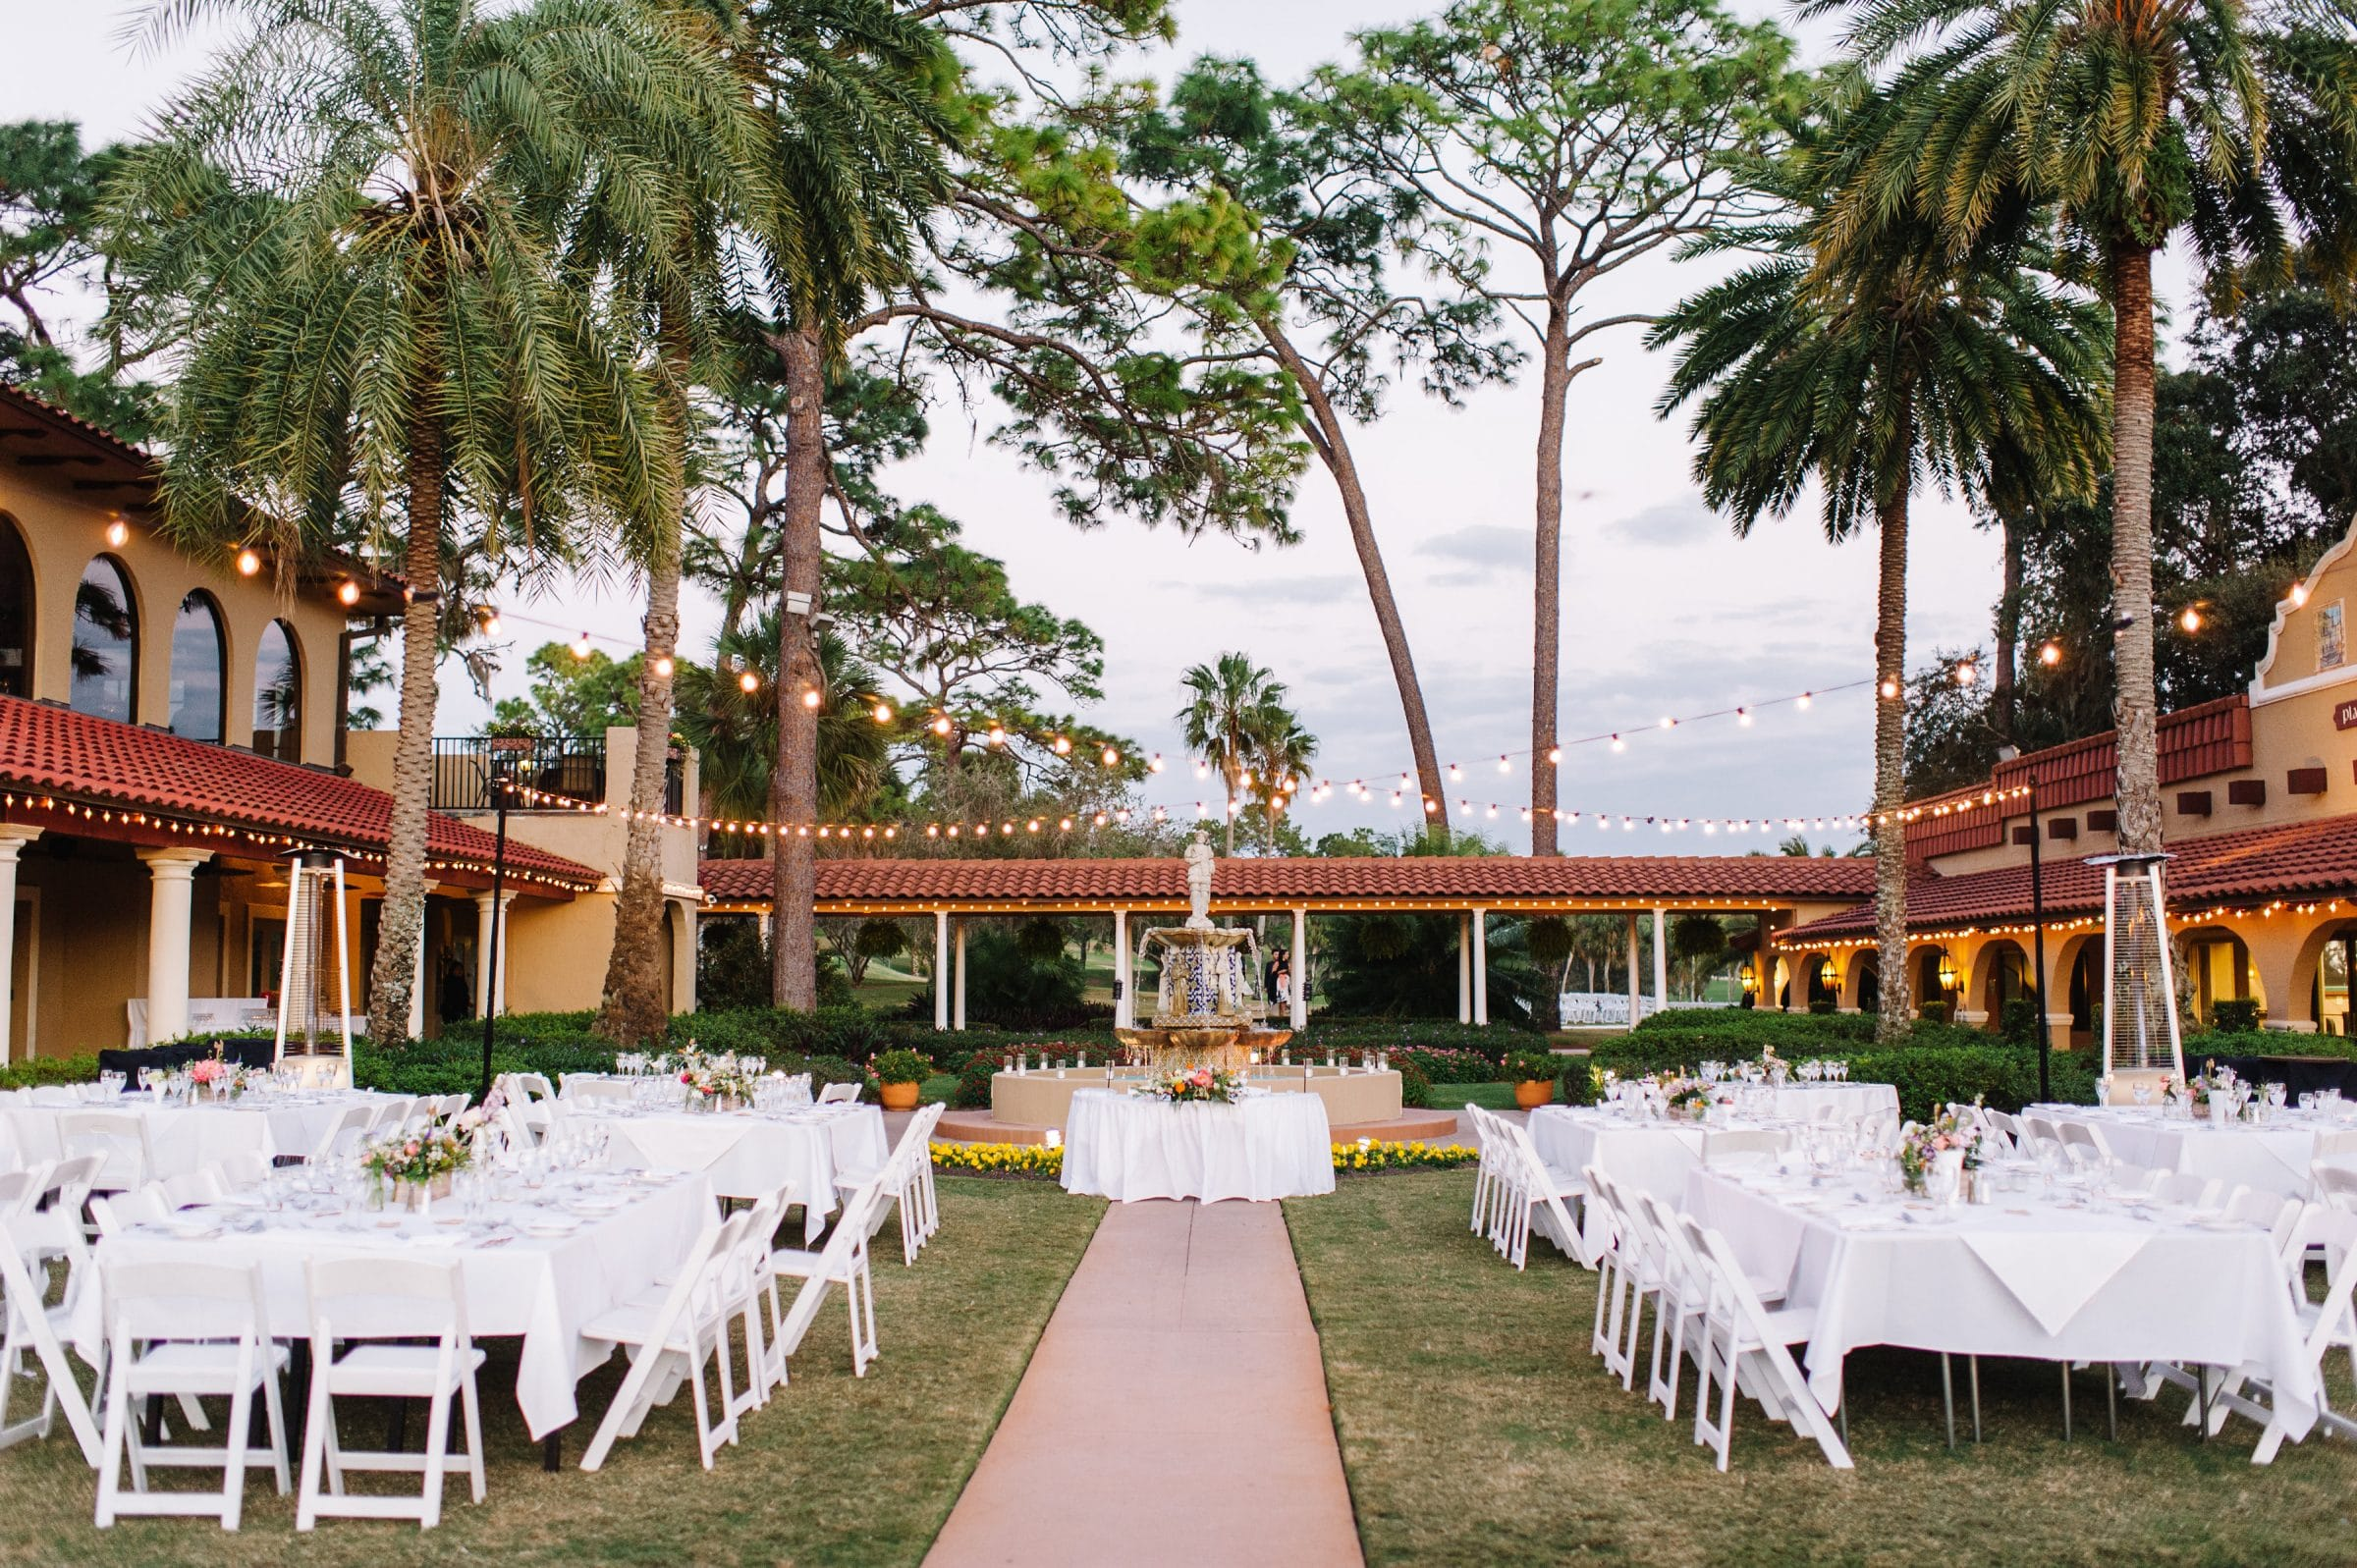 Plaza de la Fontana - outdoor wedding venue at Mission Inn Resort